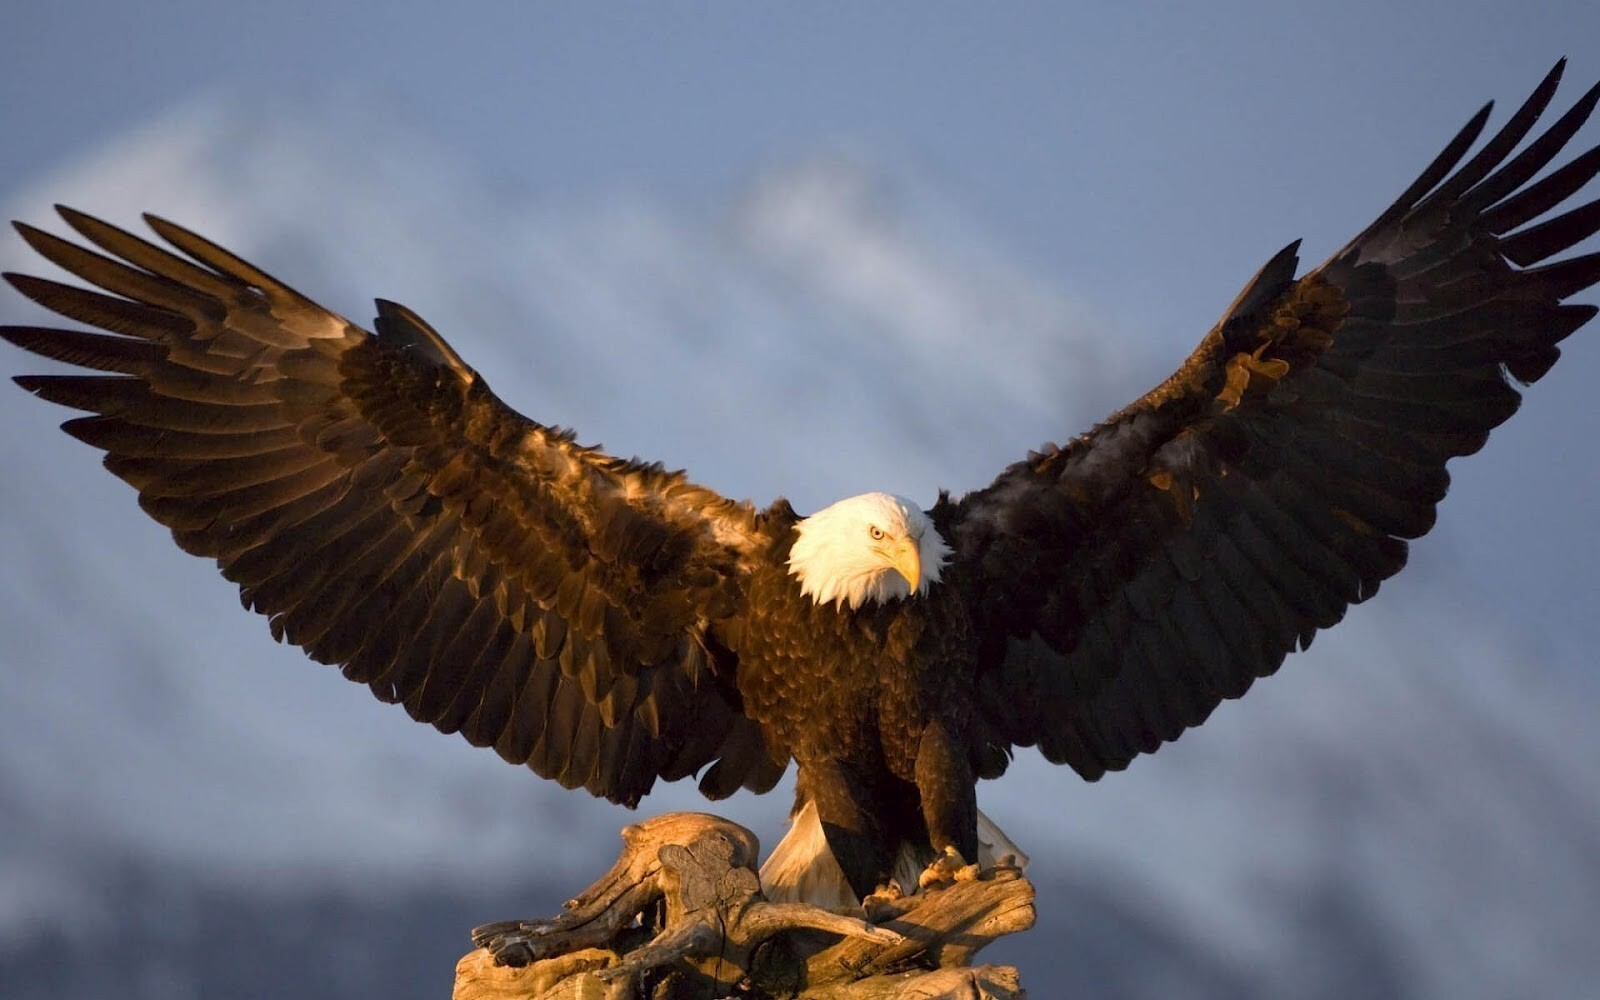 big eagle spreading his wings hd wallpapers download | hd wallpapers